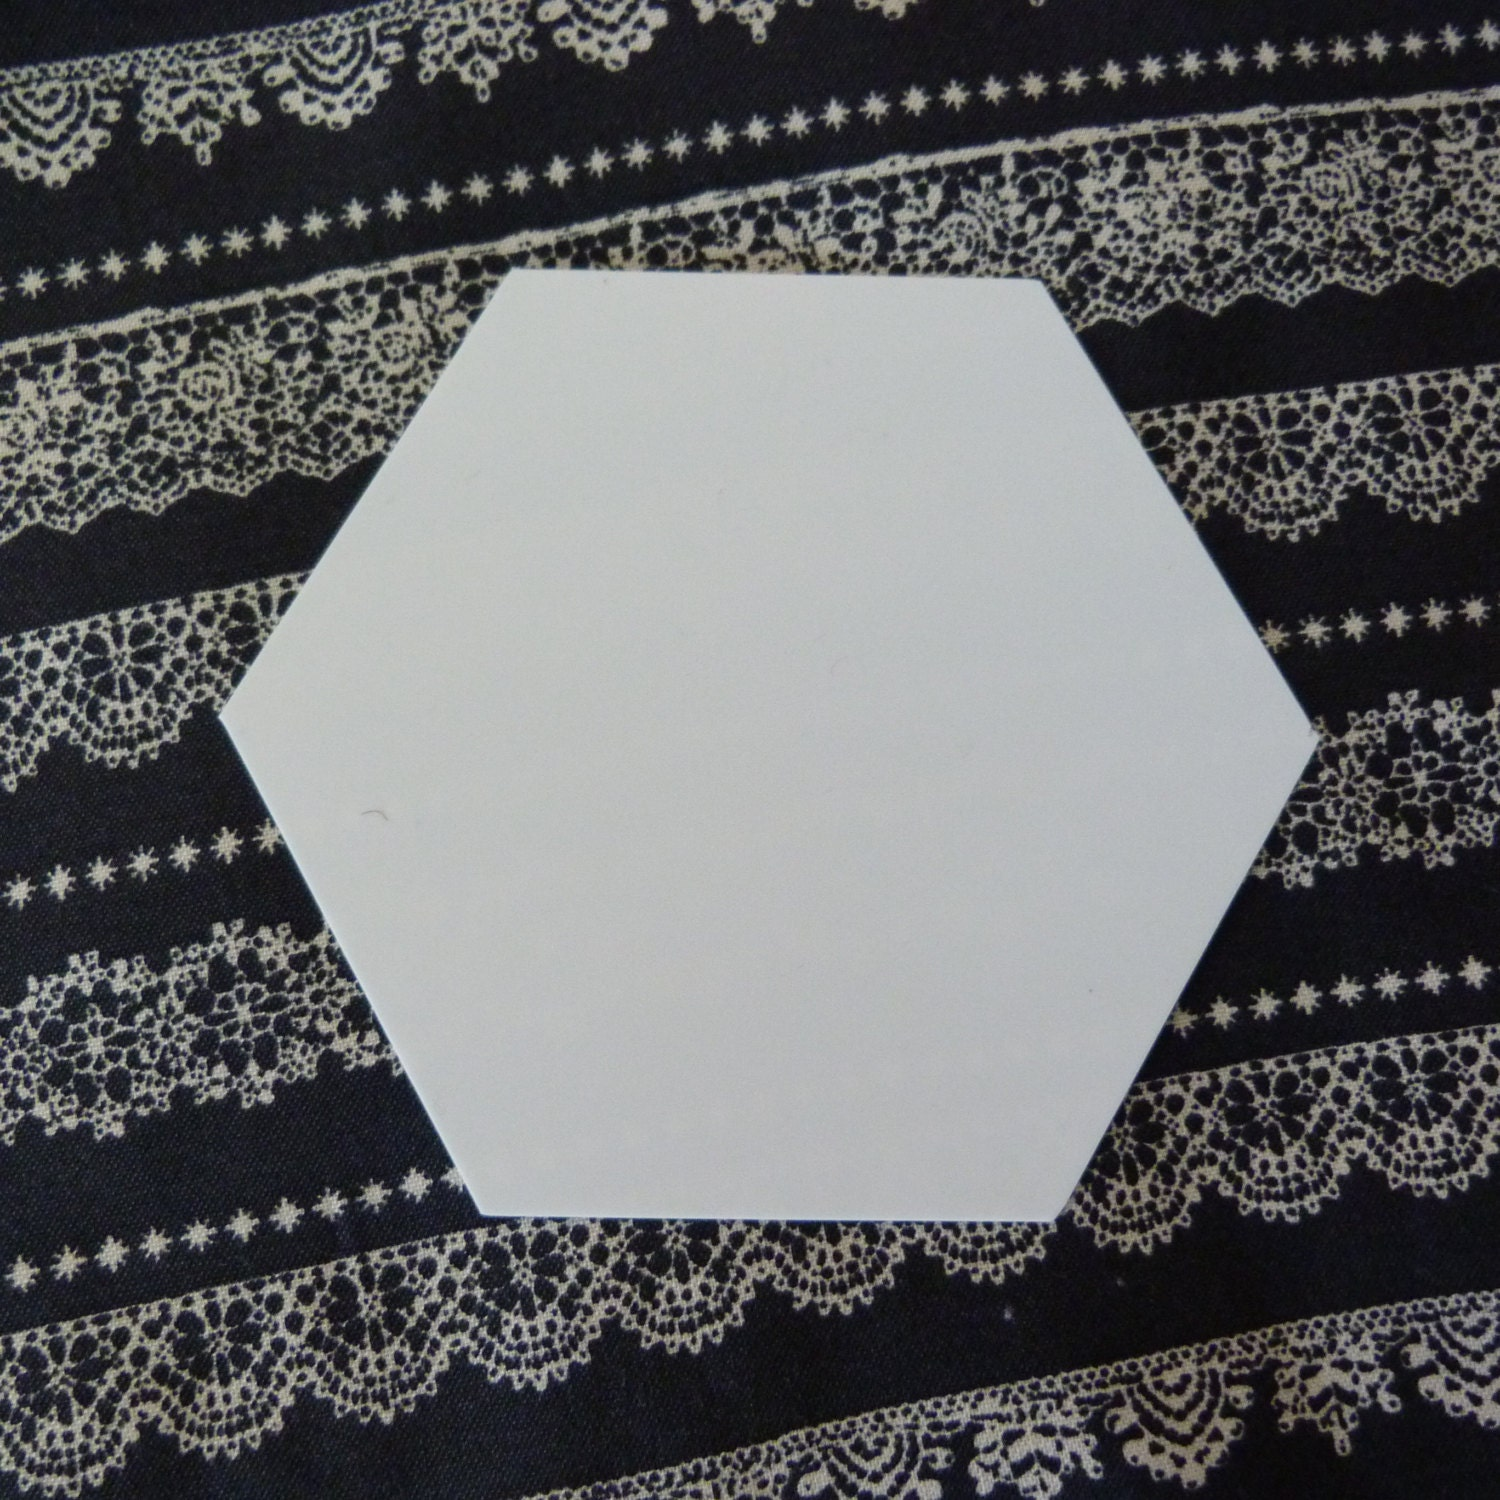 hexagon quilt template plastic plastic hexagon quilt template for english paper piecing and